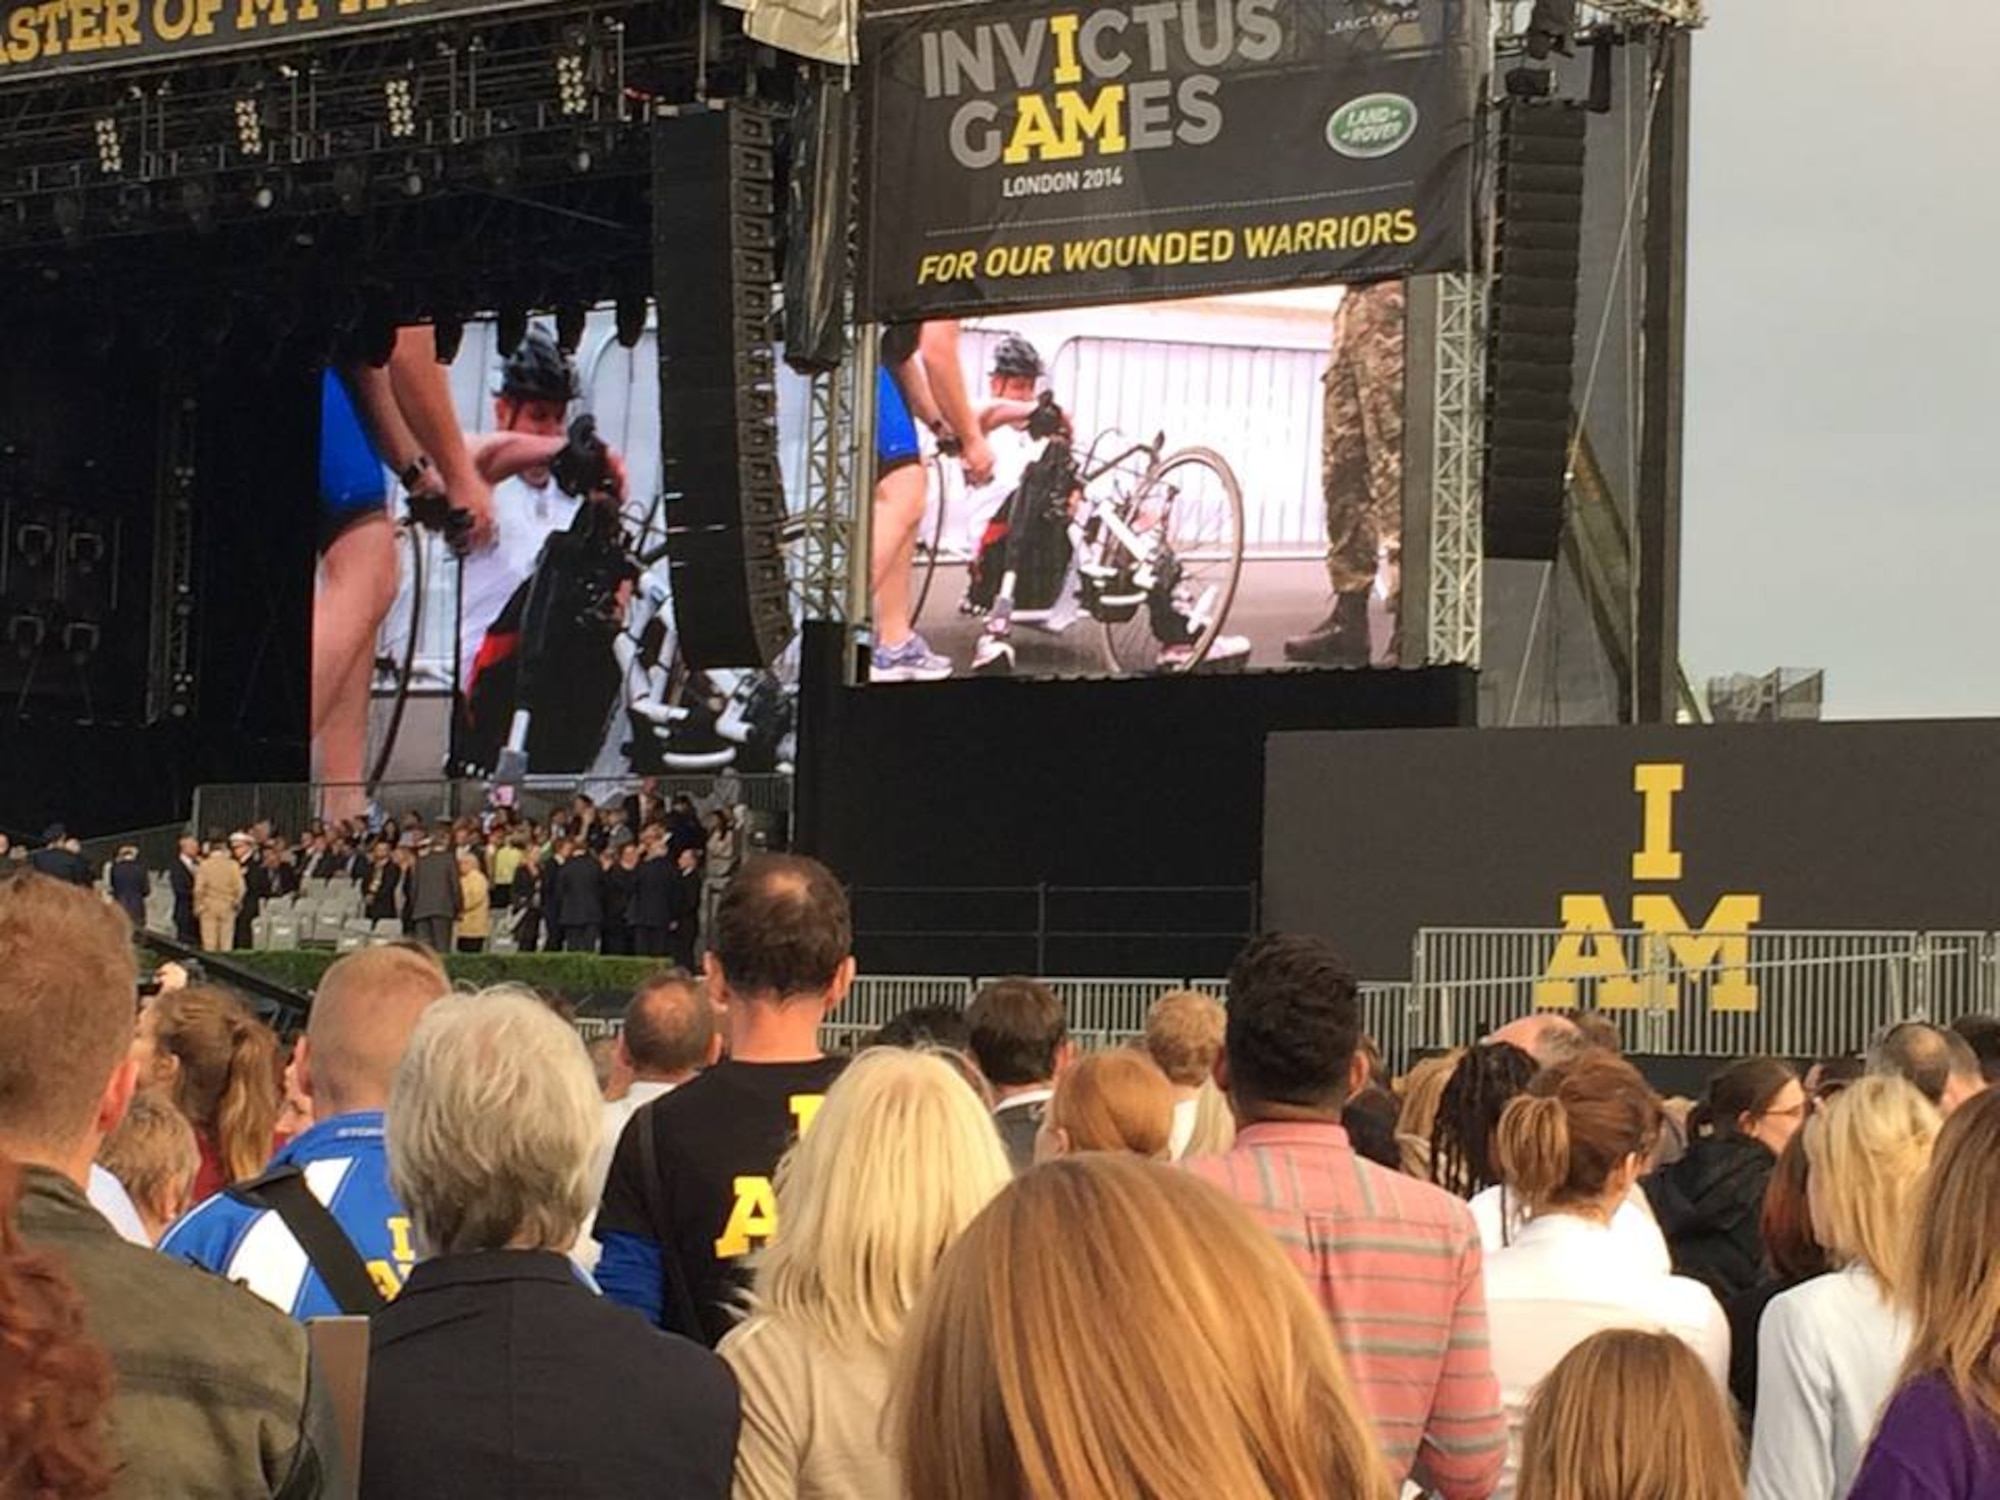 A video tribute to wounded warriors kicks off the opening ceremony of the inaugural Invictus Games Sept. 10, 2014, in London. The Invictus Games are a Paralympic-style contest that features wounded warriors from different nations competing in various events. (Courtesy photo)